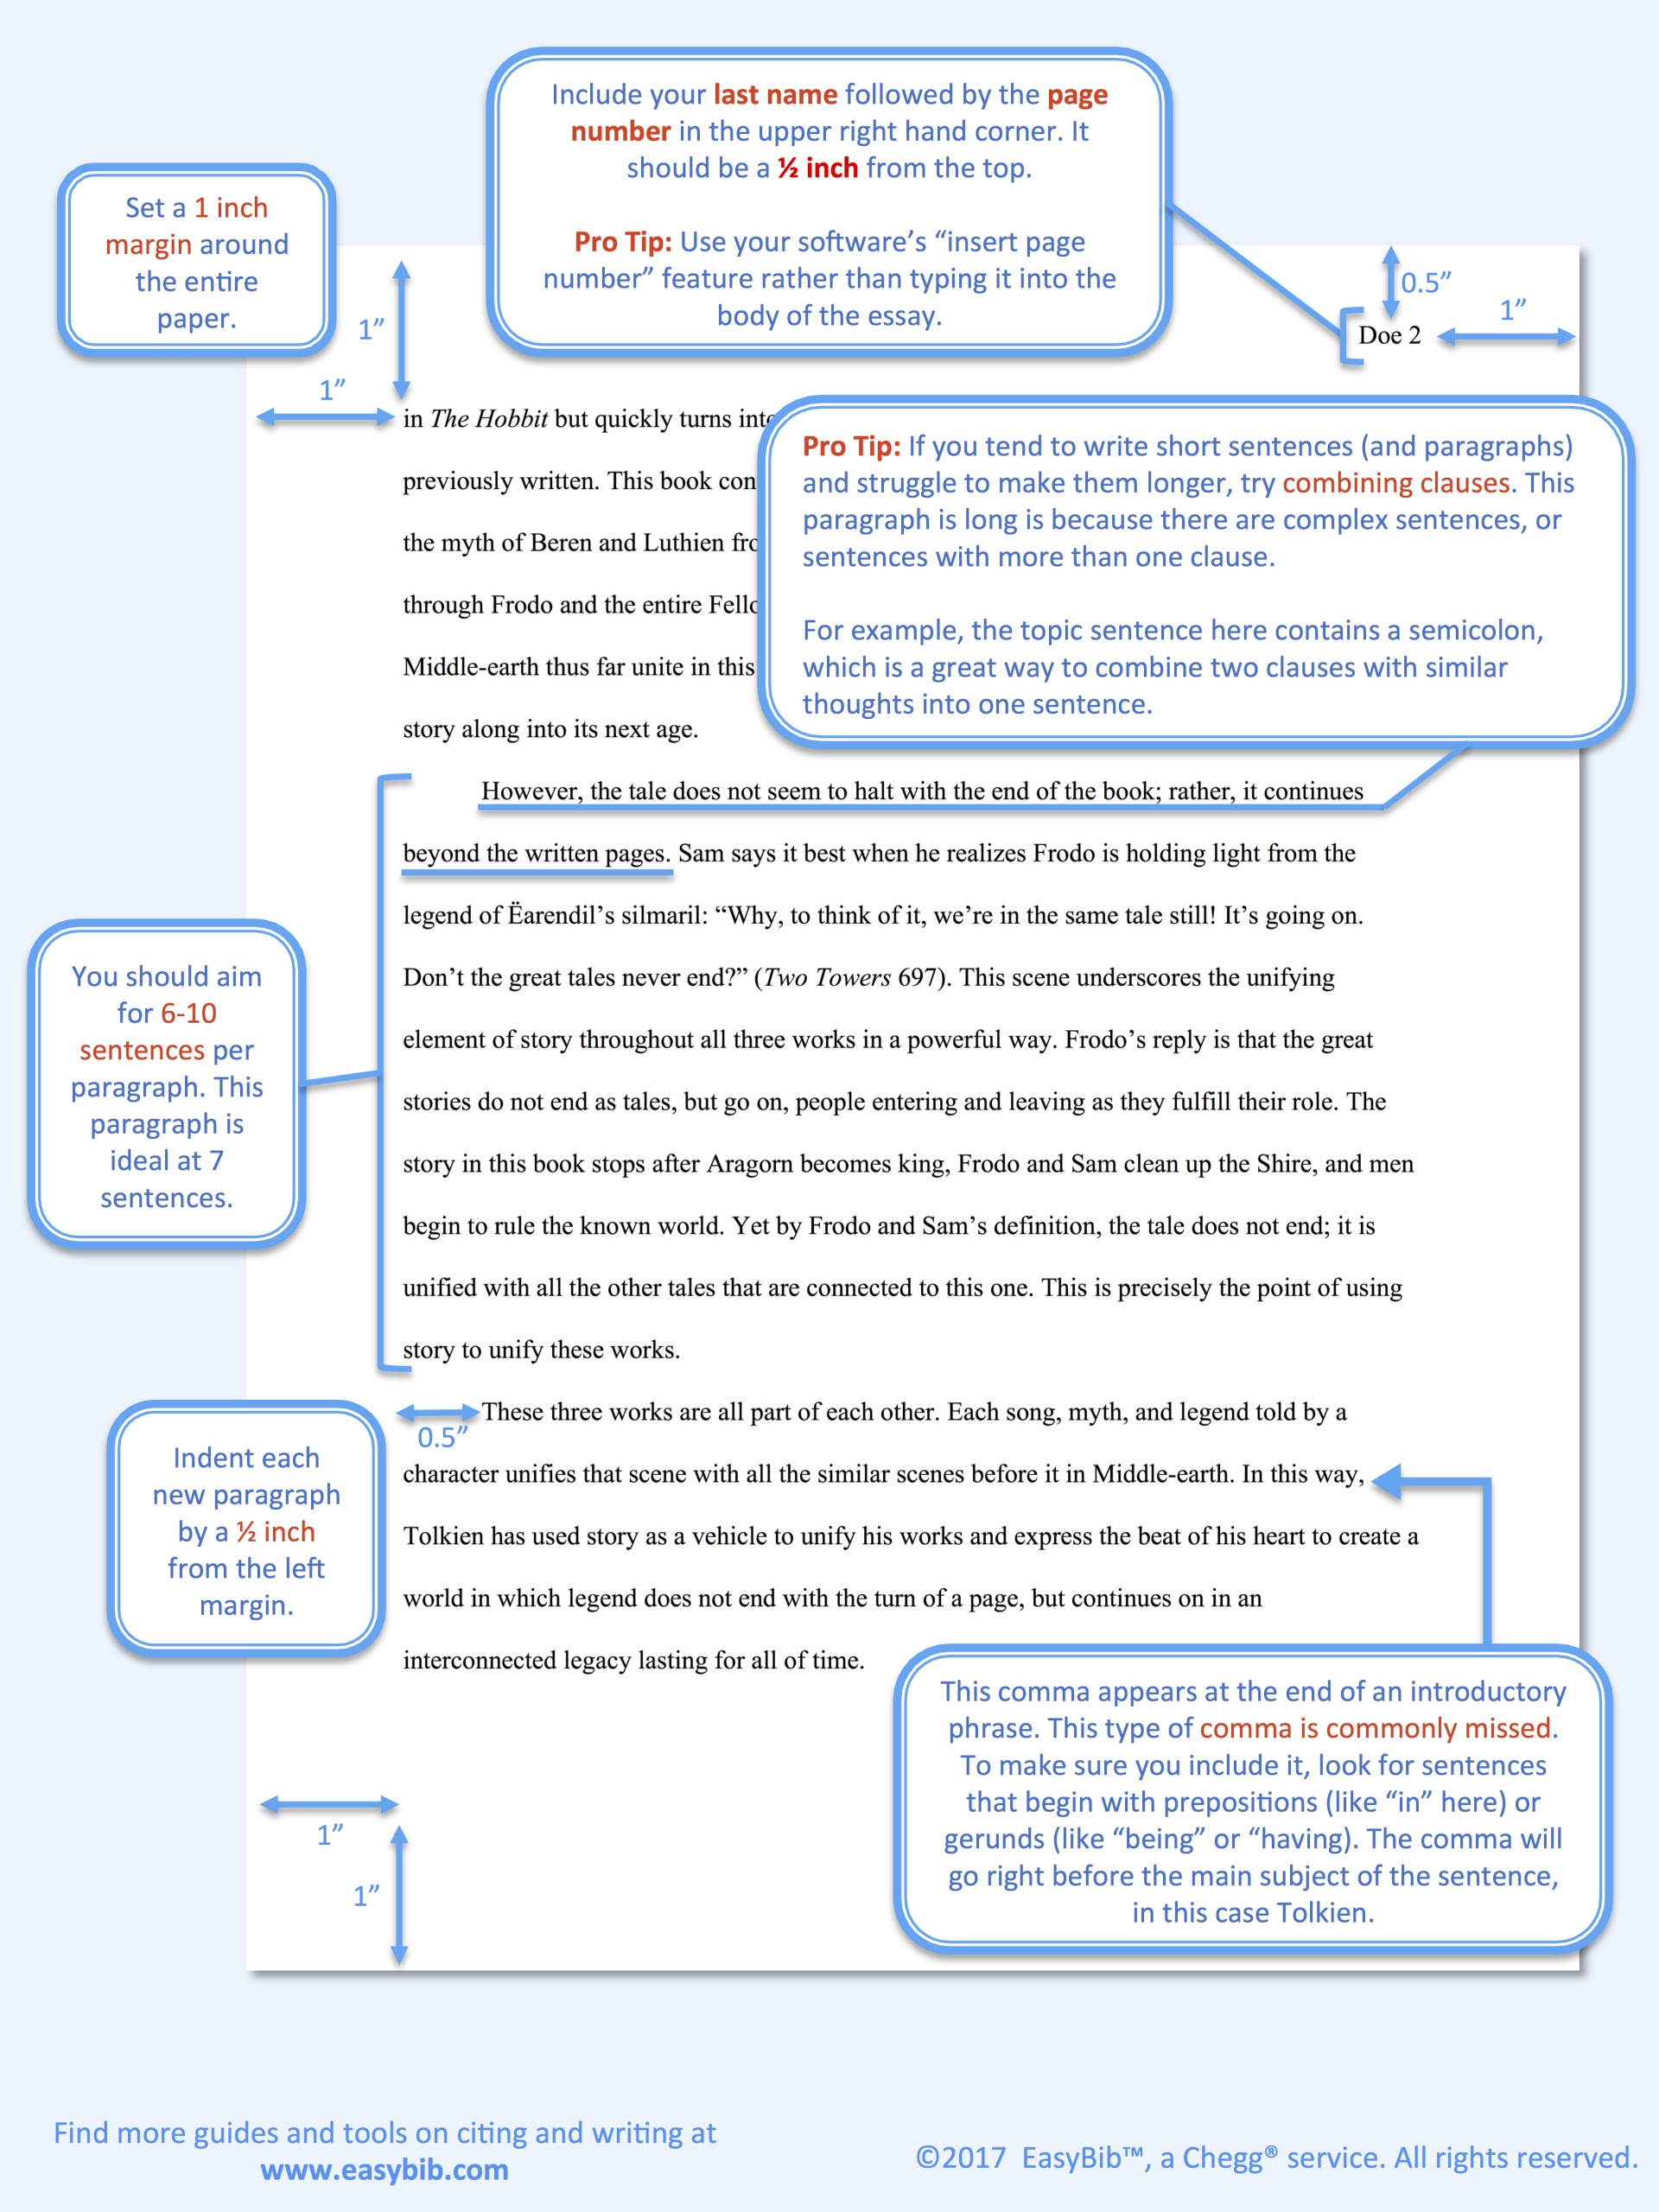 016 First Page Research Paper Mla Format Model Unique Style For The Of A Title 1920